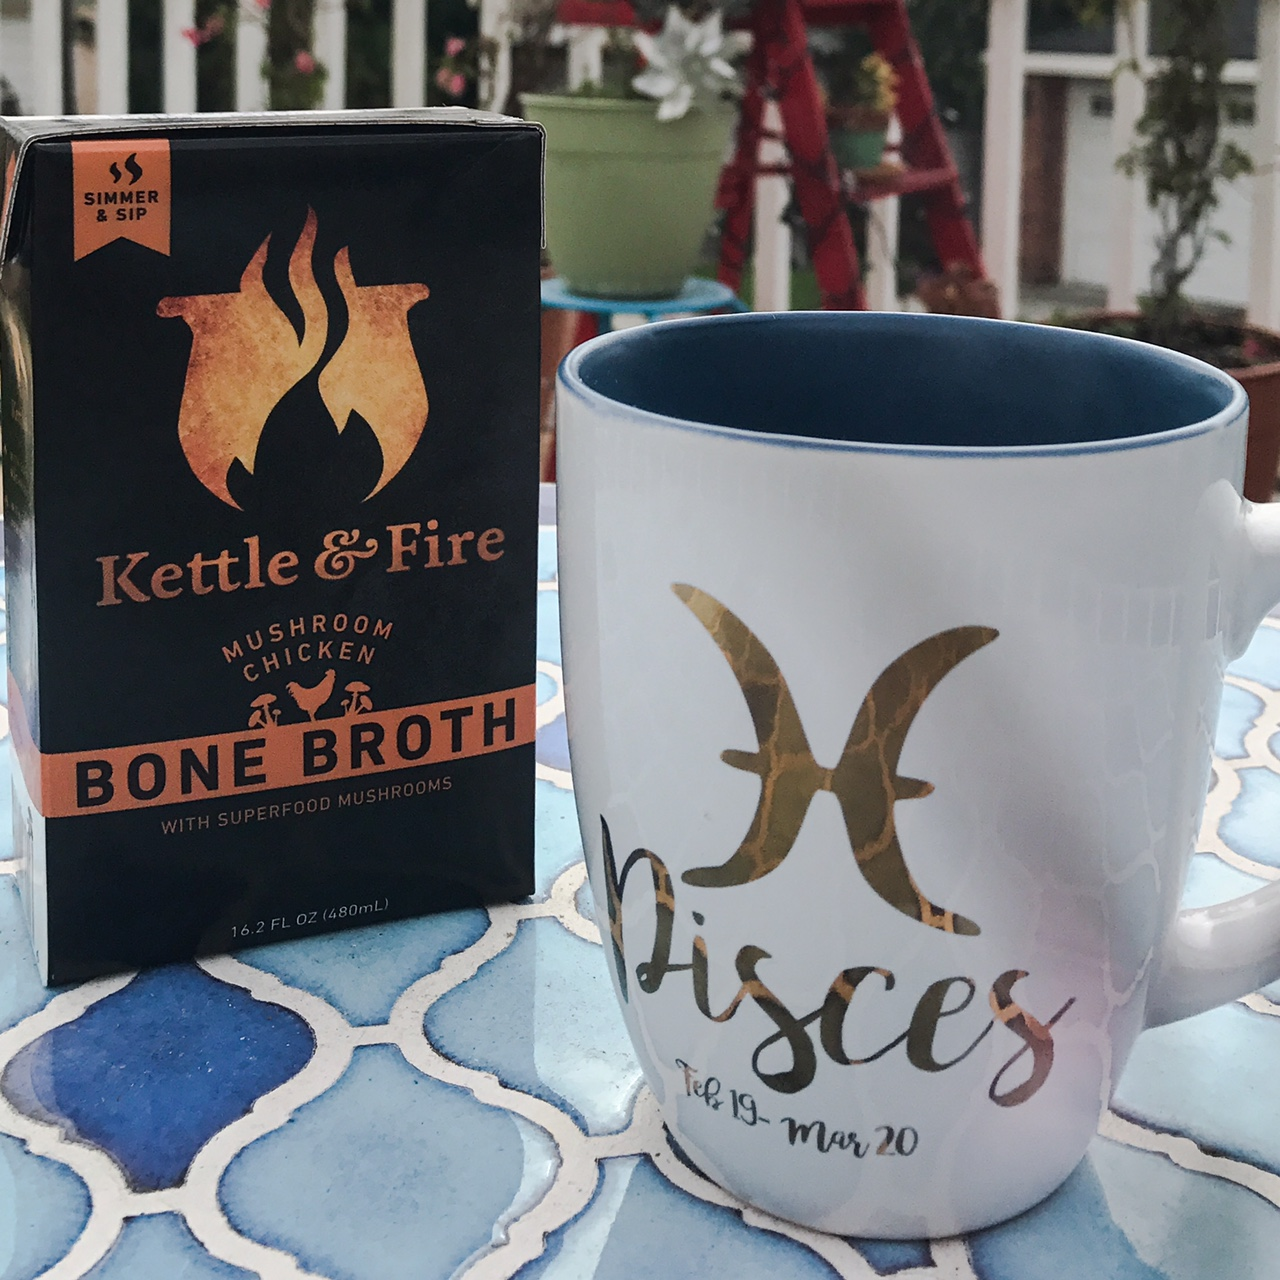 KETO PRODUCT REVIEW: KETTLE & FIRE BONE BROTH by Jen Fisch via Keto In The City